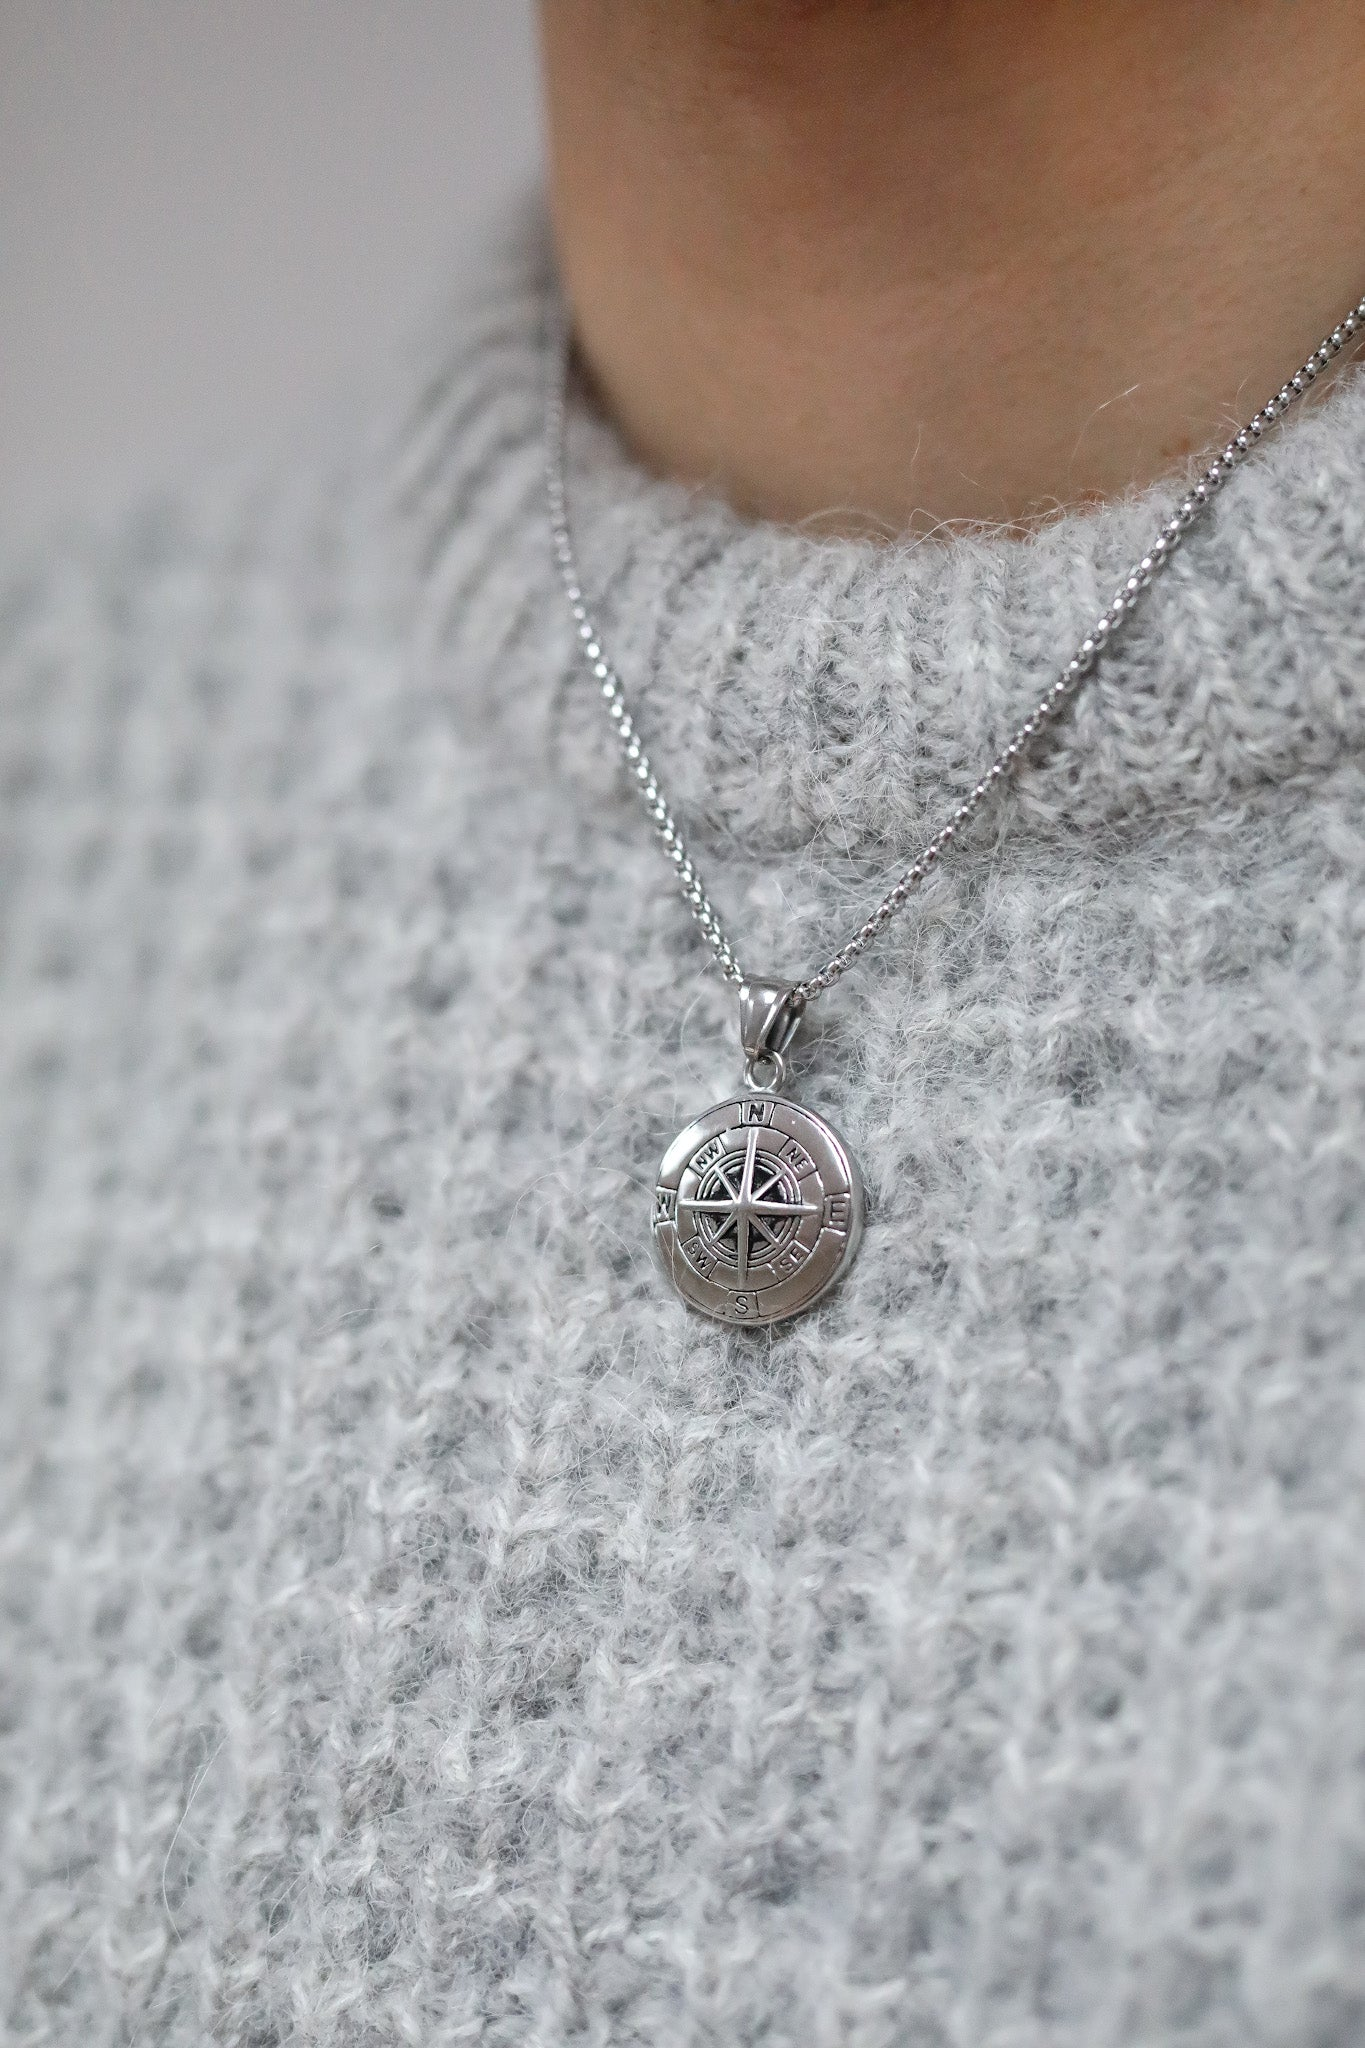 ARLO London silver stainless steel compass pendant jewellery accessory